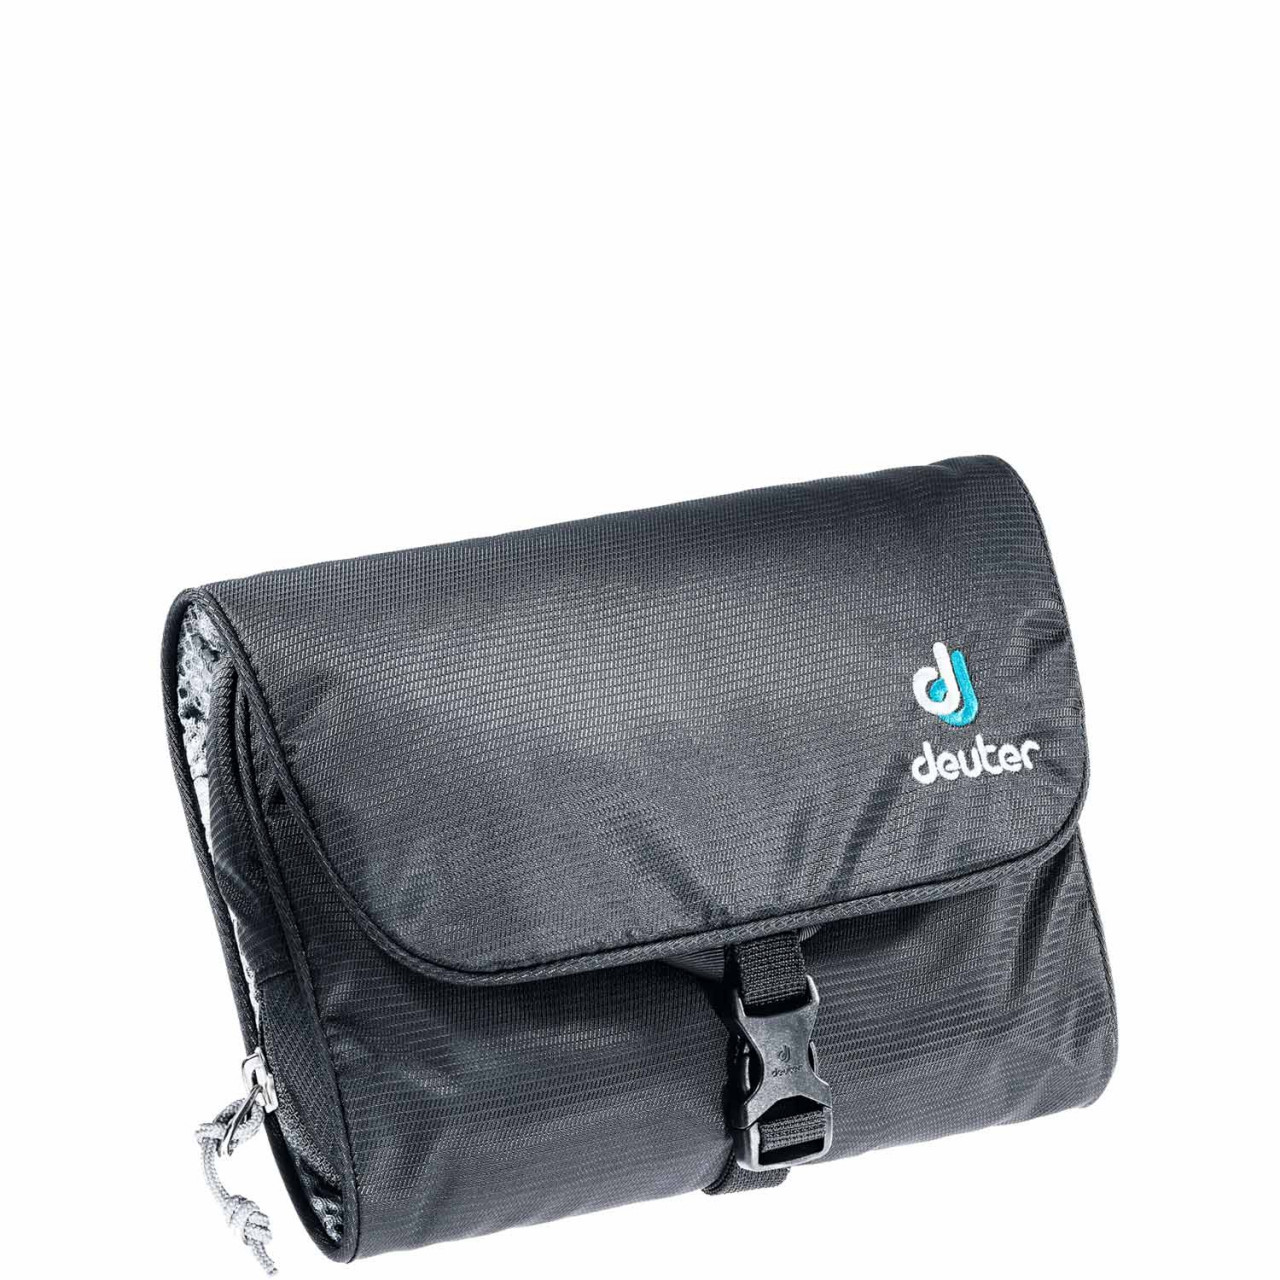 Deuter Kulturtasche Wash Bag I black